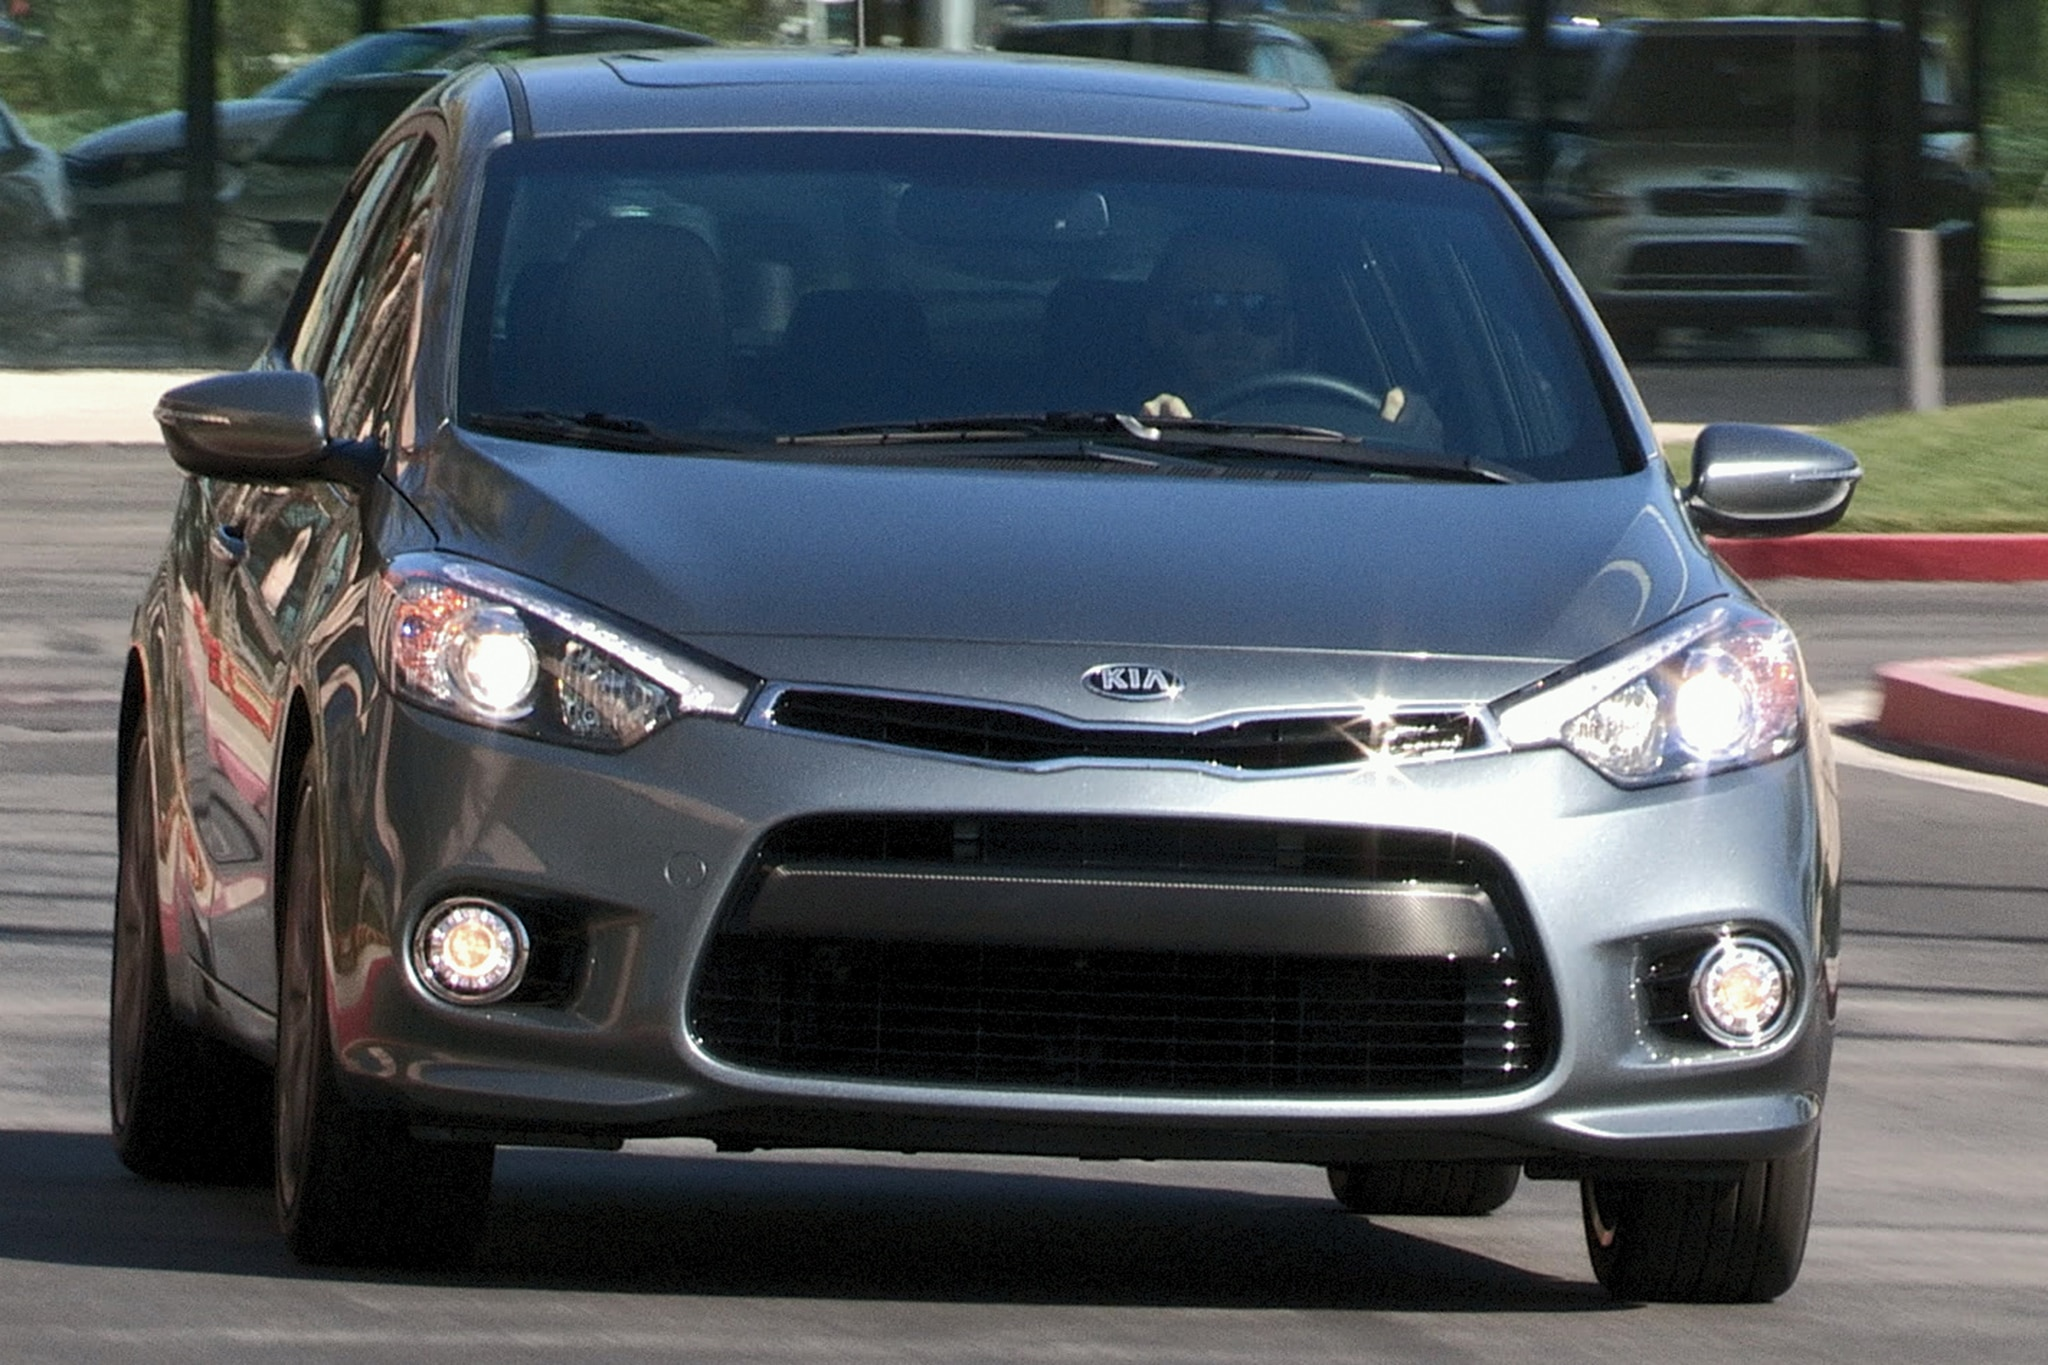 2014 kia forte5 sx review automobile magazine. Black Bedroom Furniture Sets. Home Design Ideas